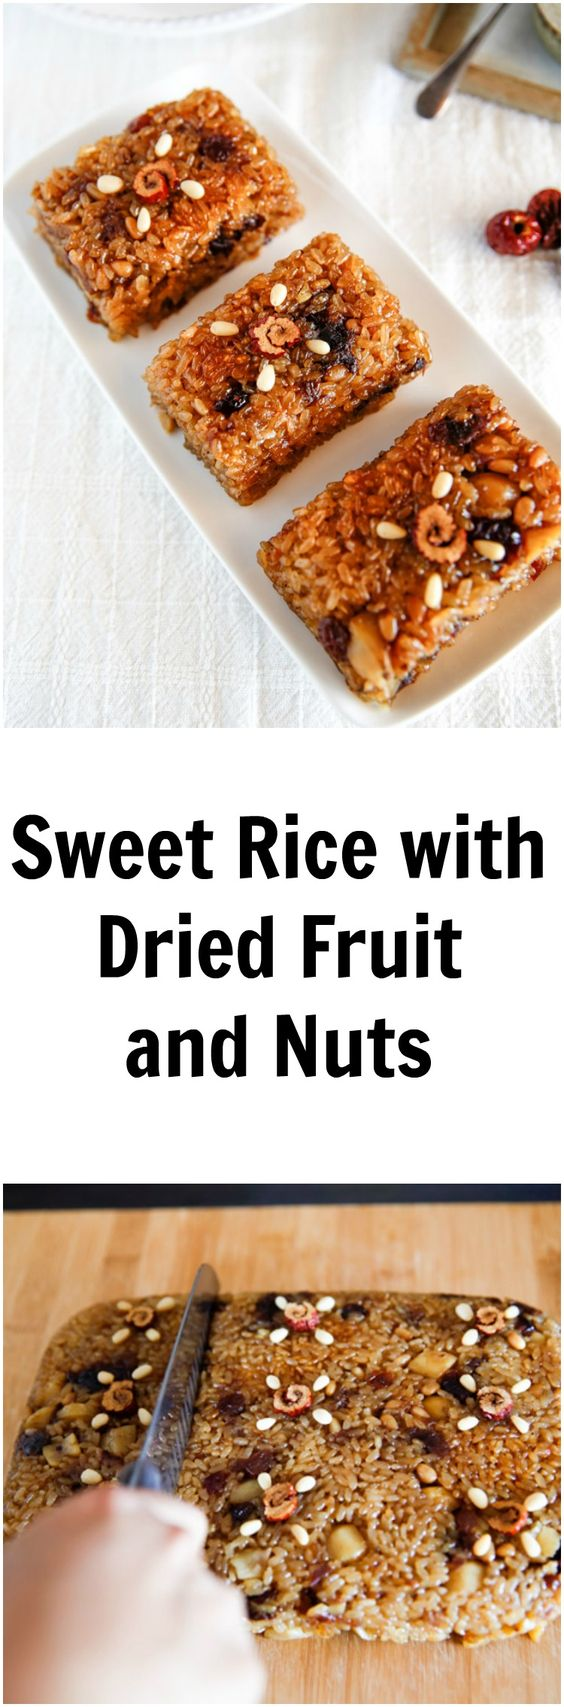 Rice with Dried Fruit and Nuts | Recipe | Dried Fruit, Rice and Fruit ...